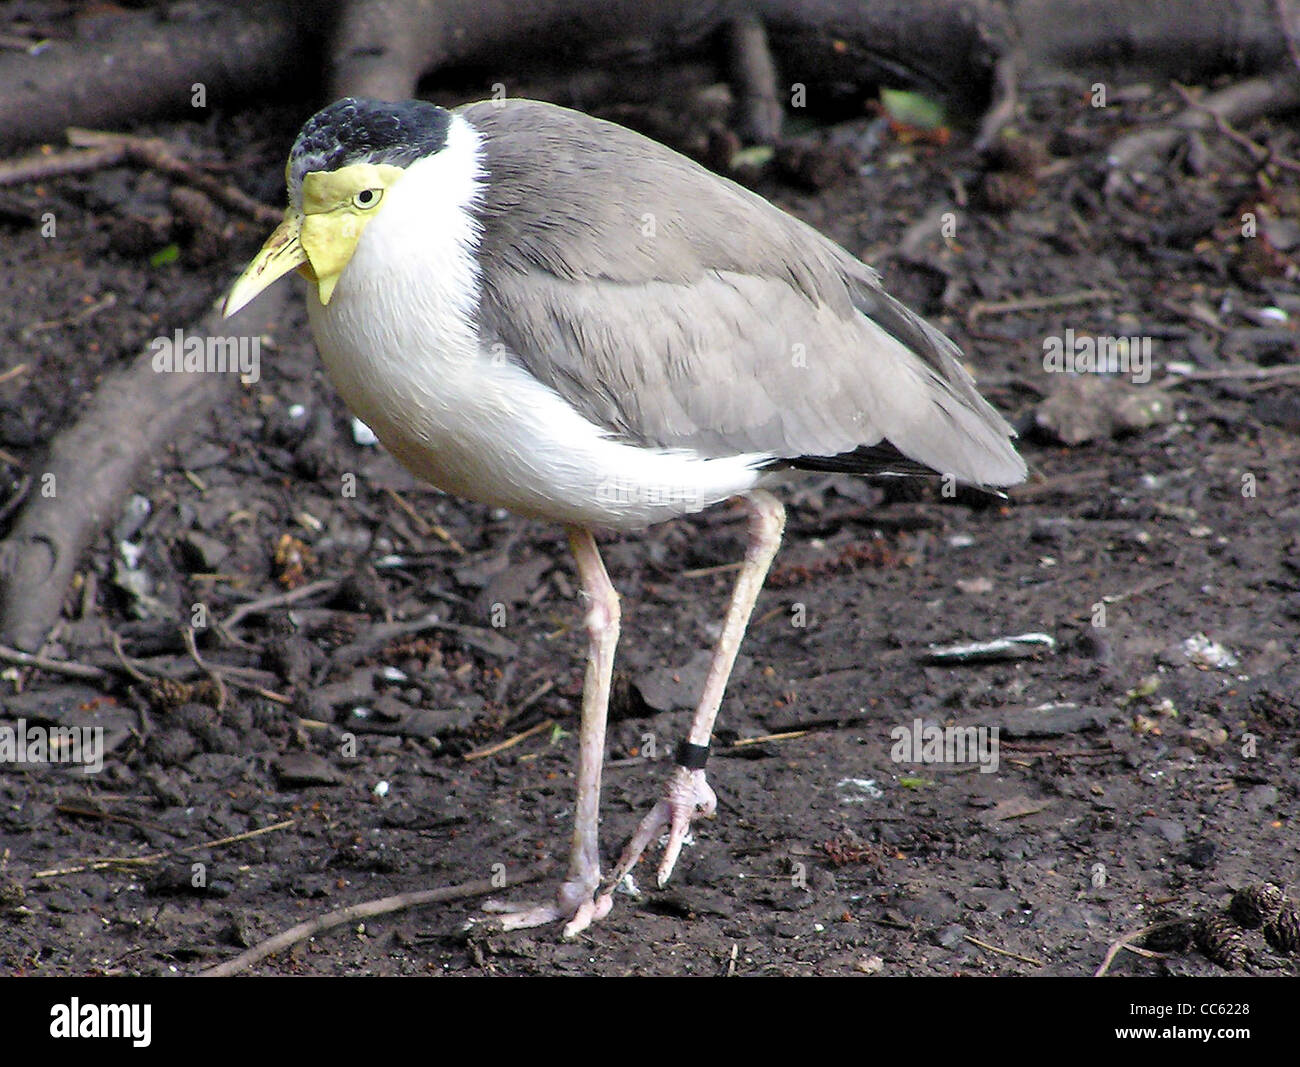 Masked Lapwing Vanellus miles miles in the Wallace Aviary at Bristol Zoo, Bristol, England. - Stock Image